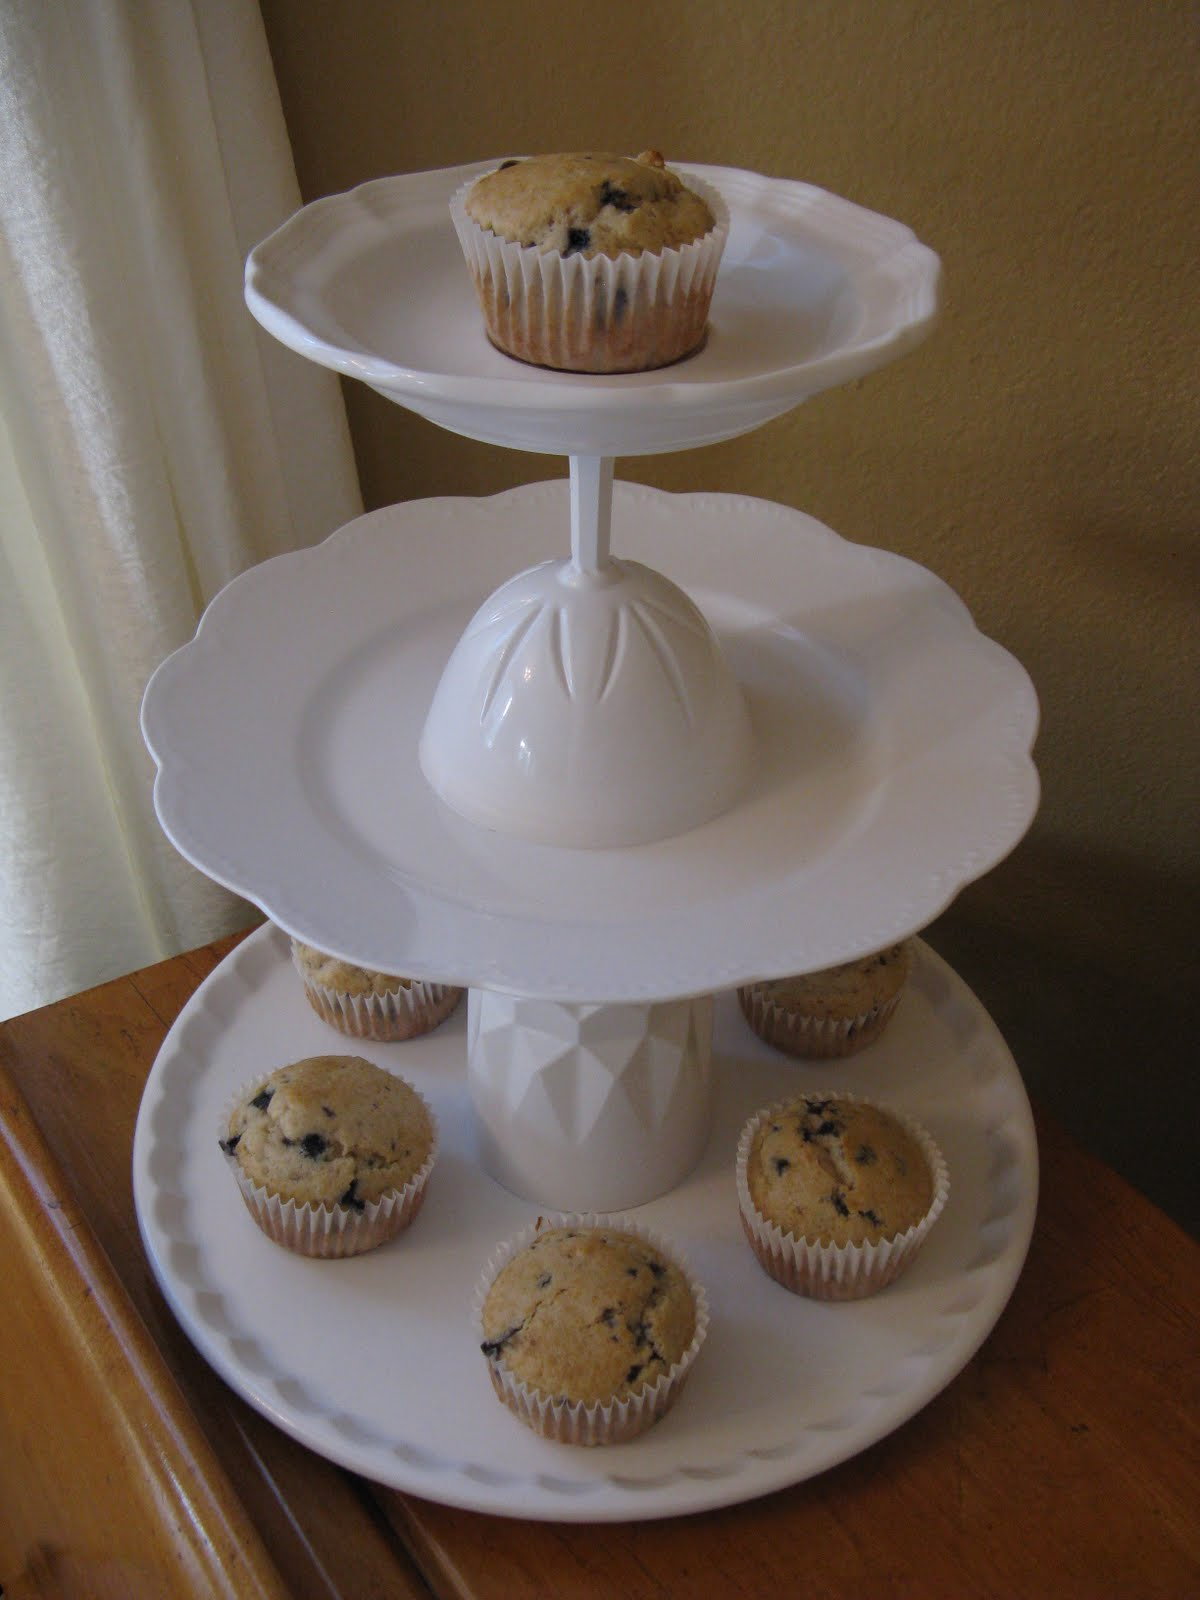 Making Plates Into Cake Stands